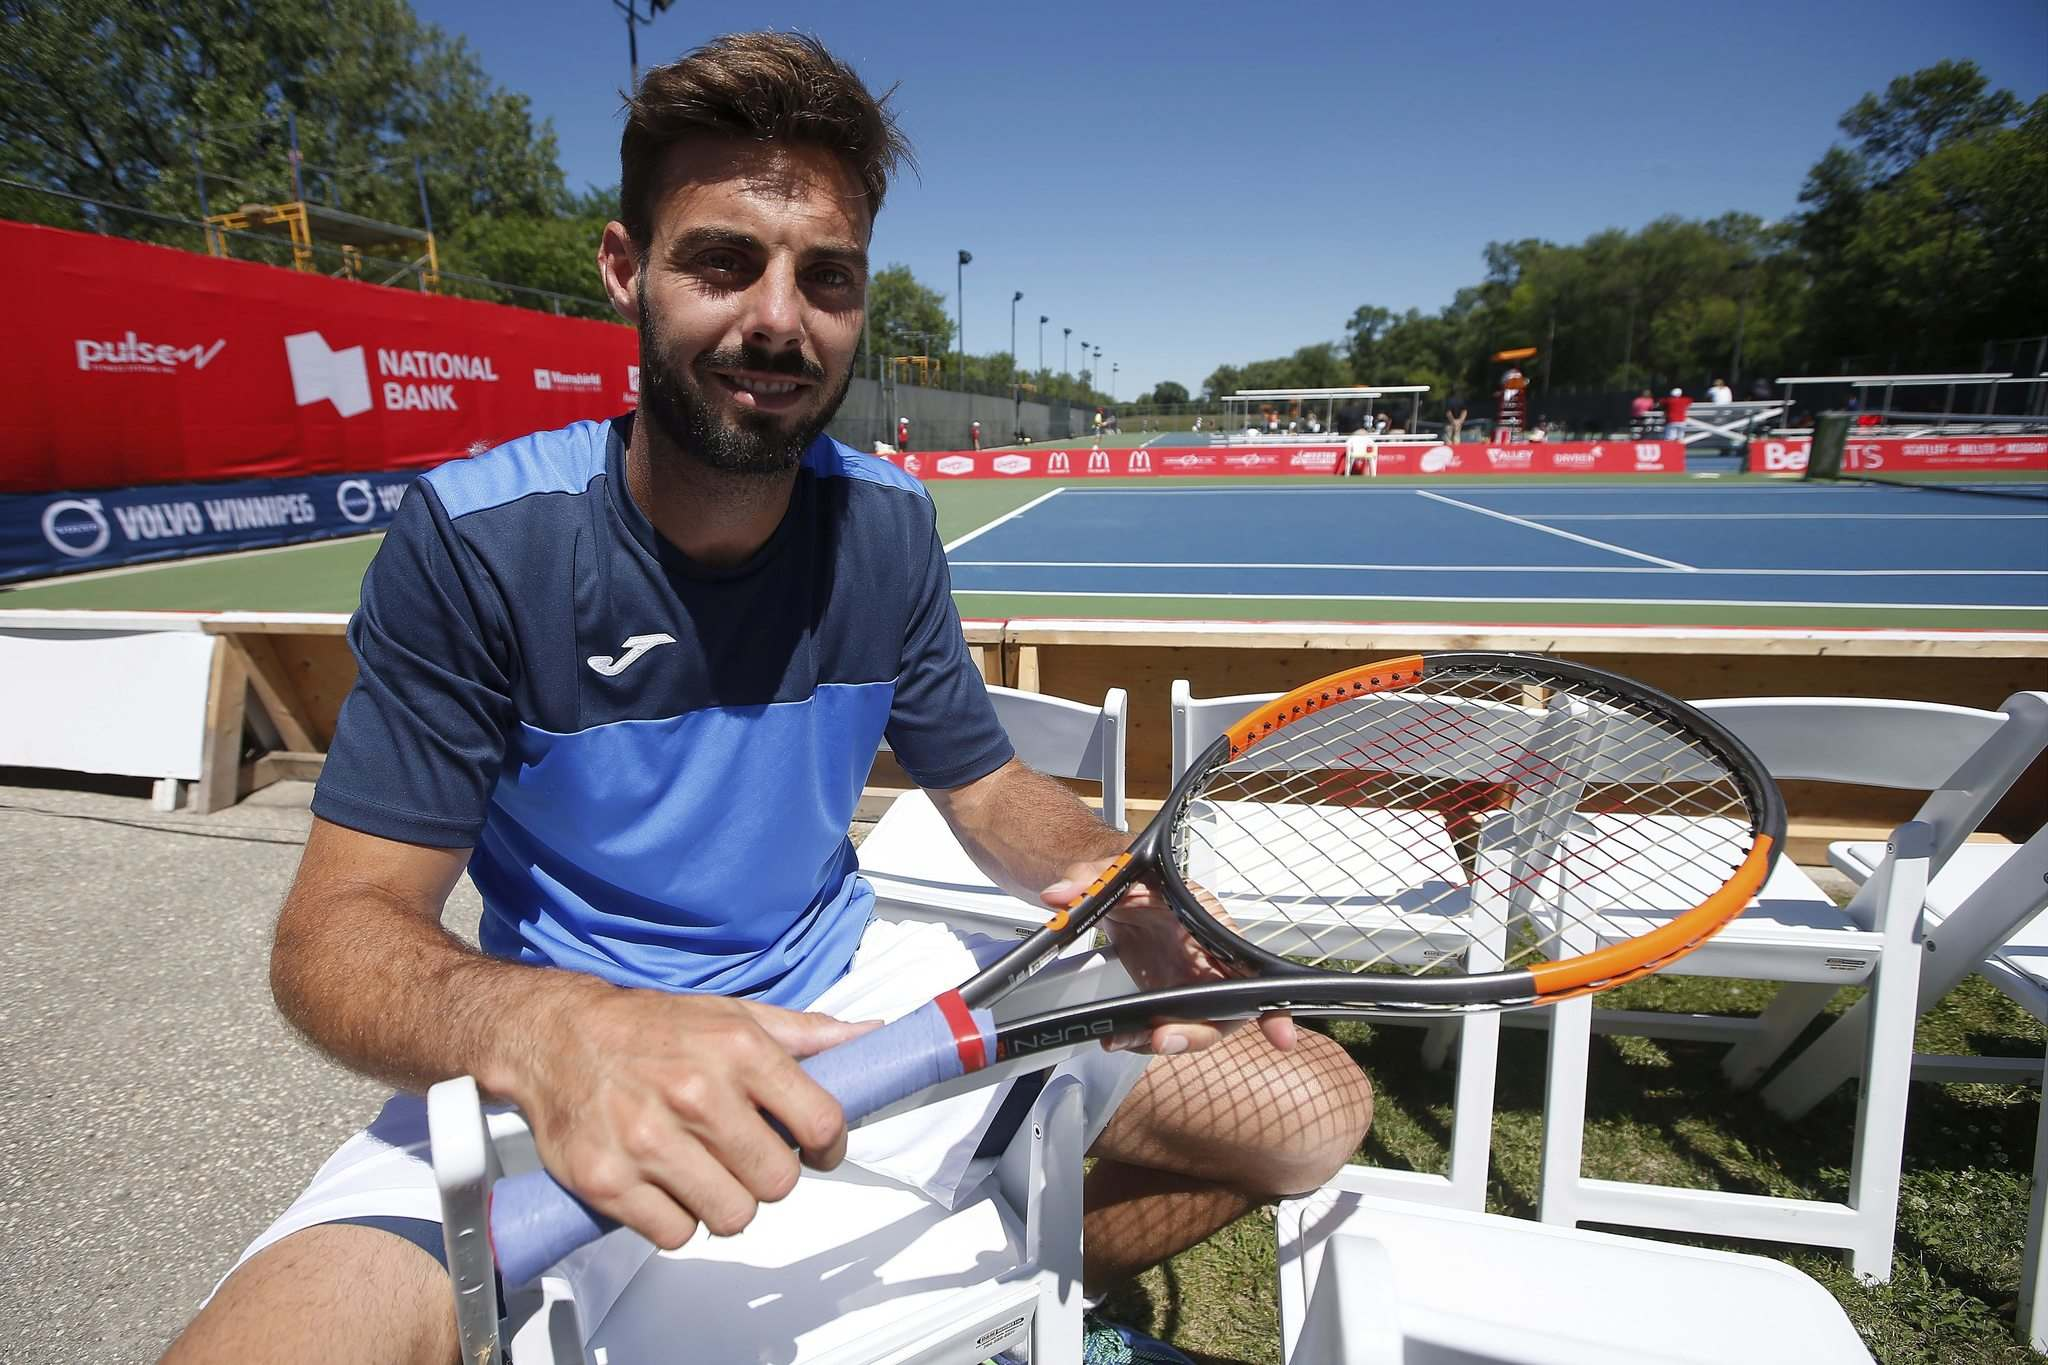 JOHN WOODS / WINNIPEG FREE PRESS</p><p>Marcel Granollers travelled to Winnipeg for the National Bank Challenger tennis tournament just days after getting ousted from Wimbledon.</p>